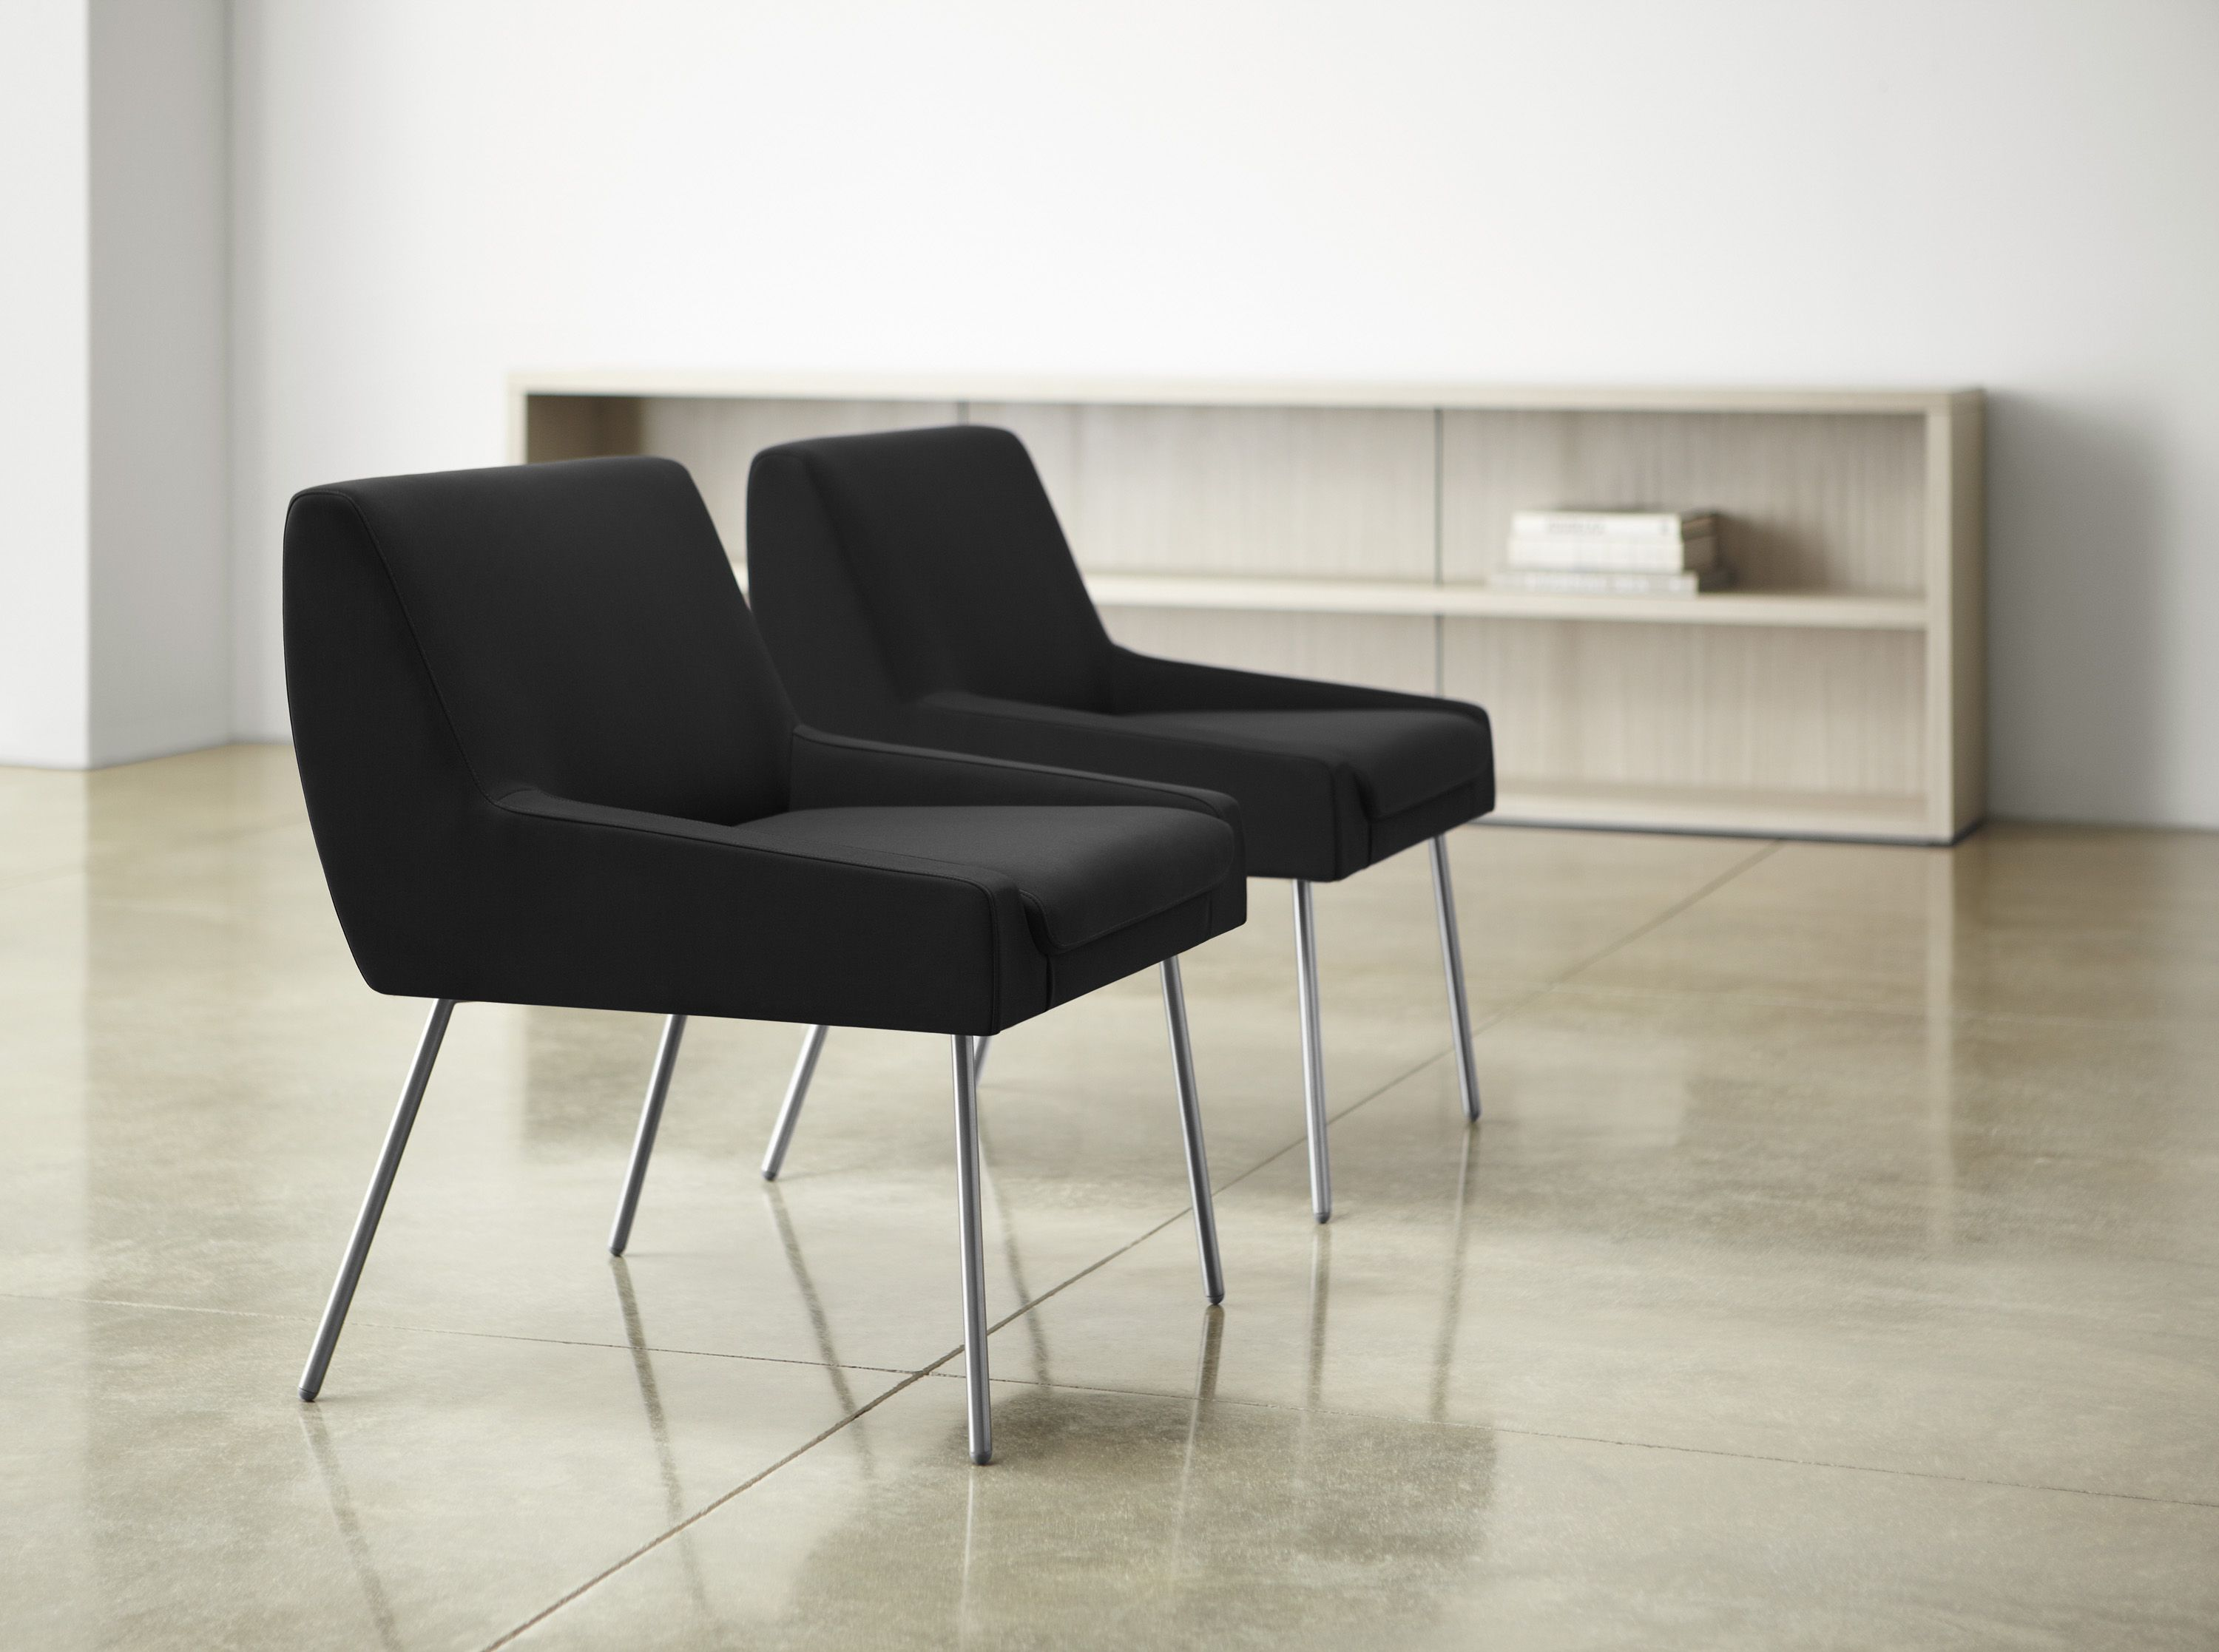 Sessel Empfangsbereich The Tuohy Edo Guest Chair A Comprehensive Offering Of Lounge And